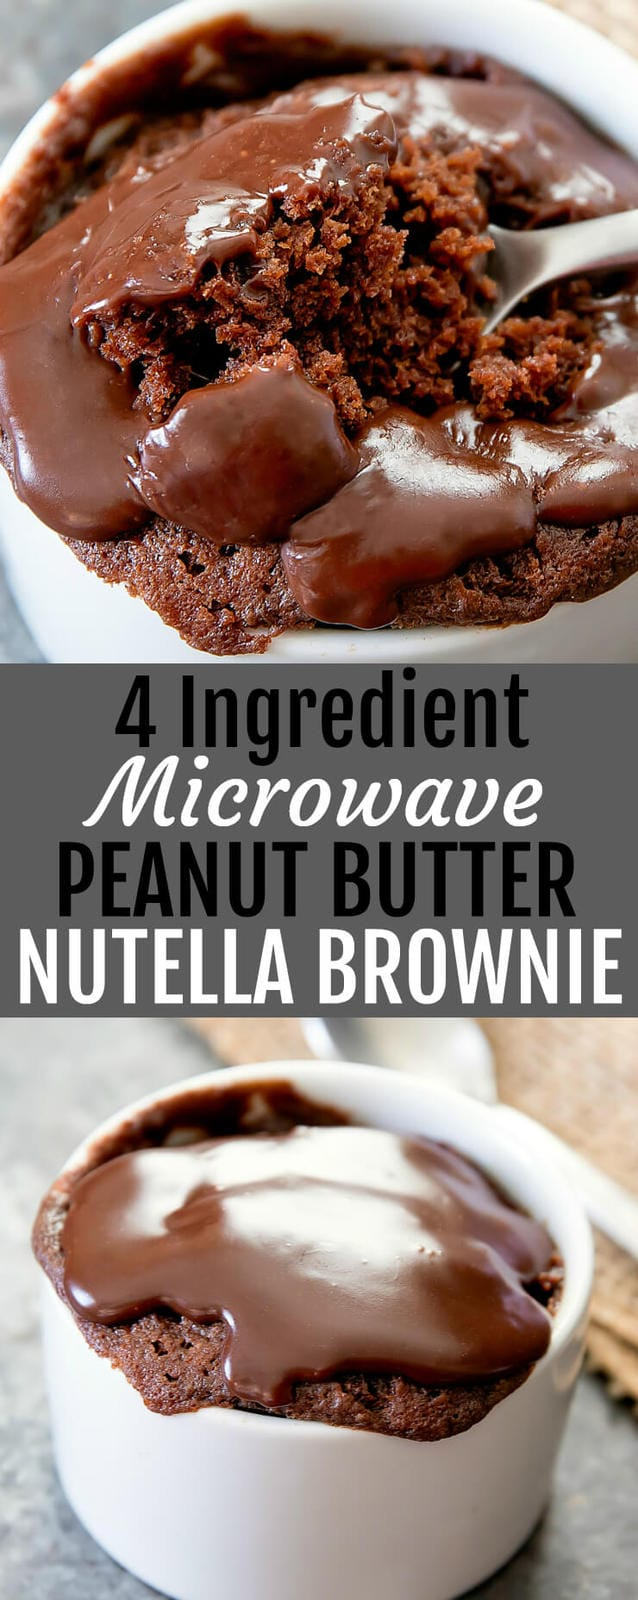 4 Ingredient Microwave Peanut Butter Nutella Brownie Mug Cake. A single serving peanut butter and Nutella flavored brownie that cooks in about 1 minute!